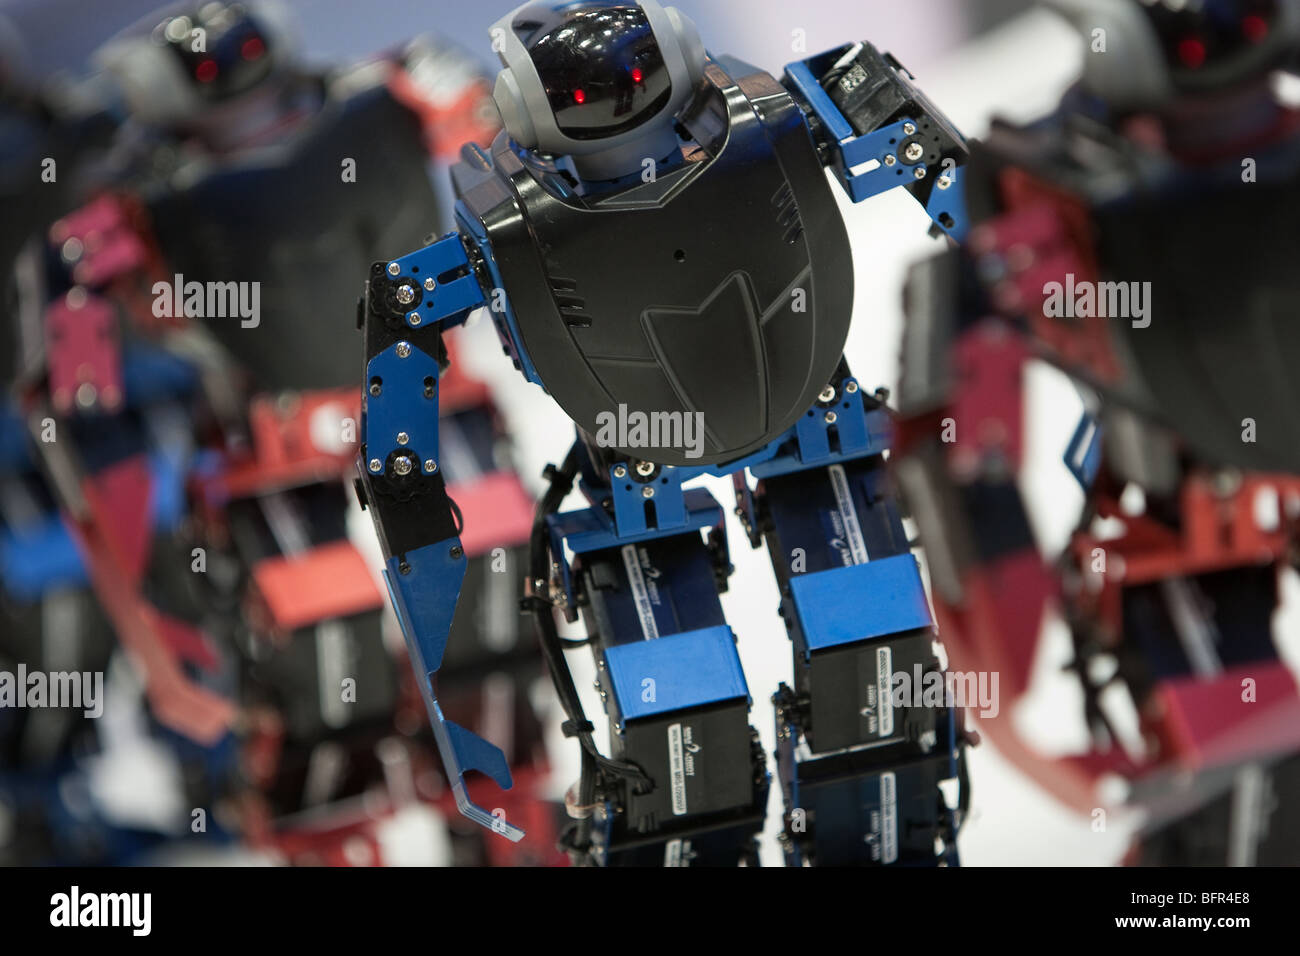 International Robot Exhibition 2009, in Tokyo, Japan, Wednesday 25th November 2009. - Stock Image